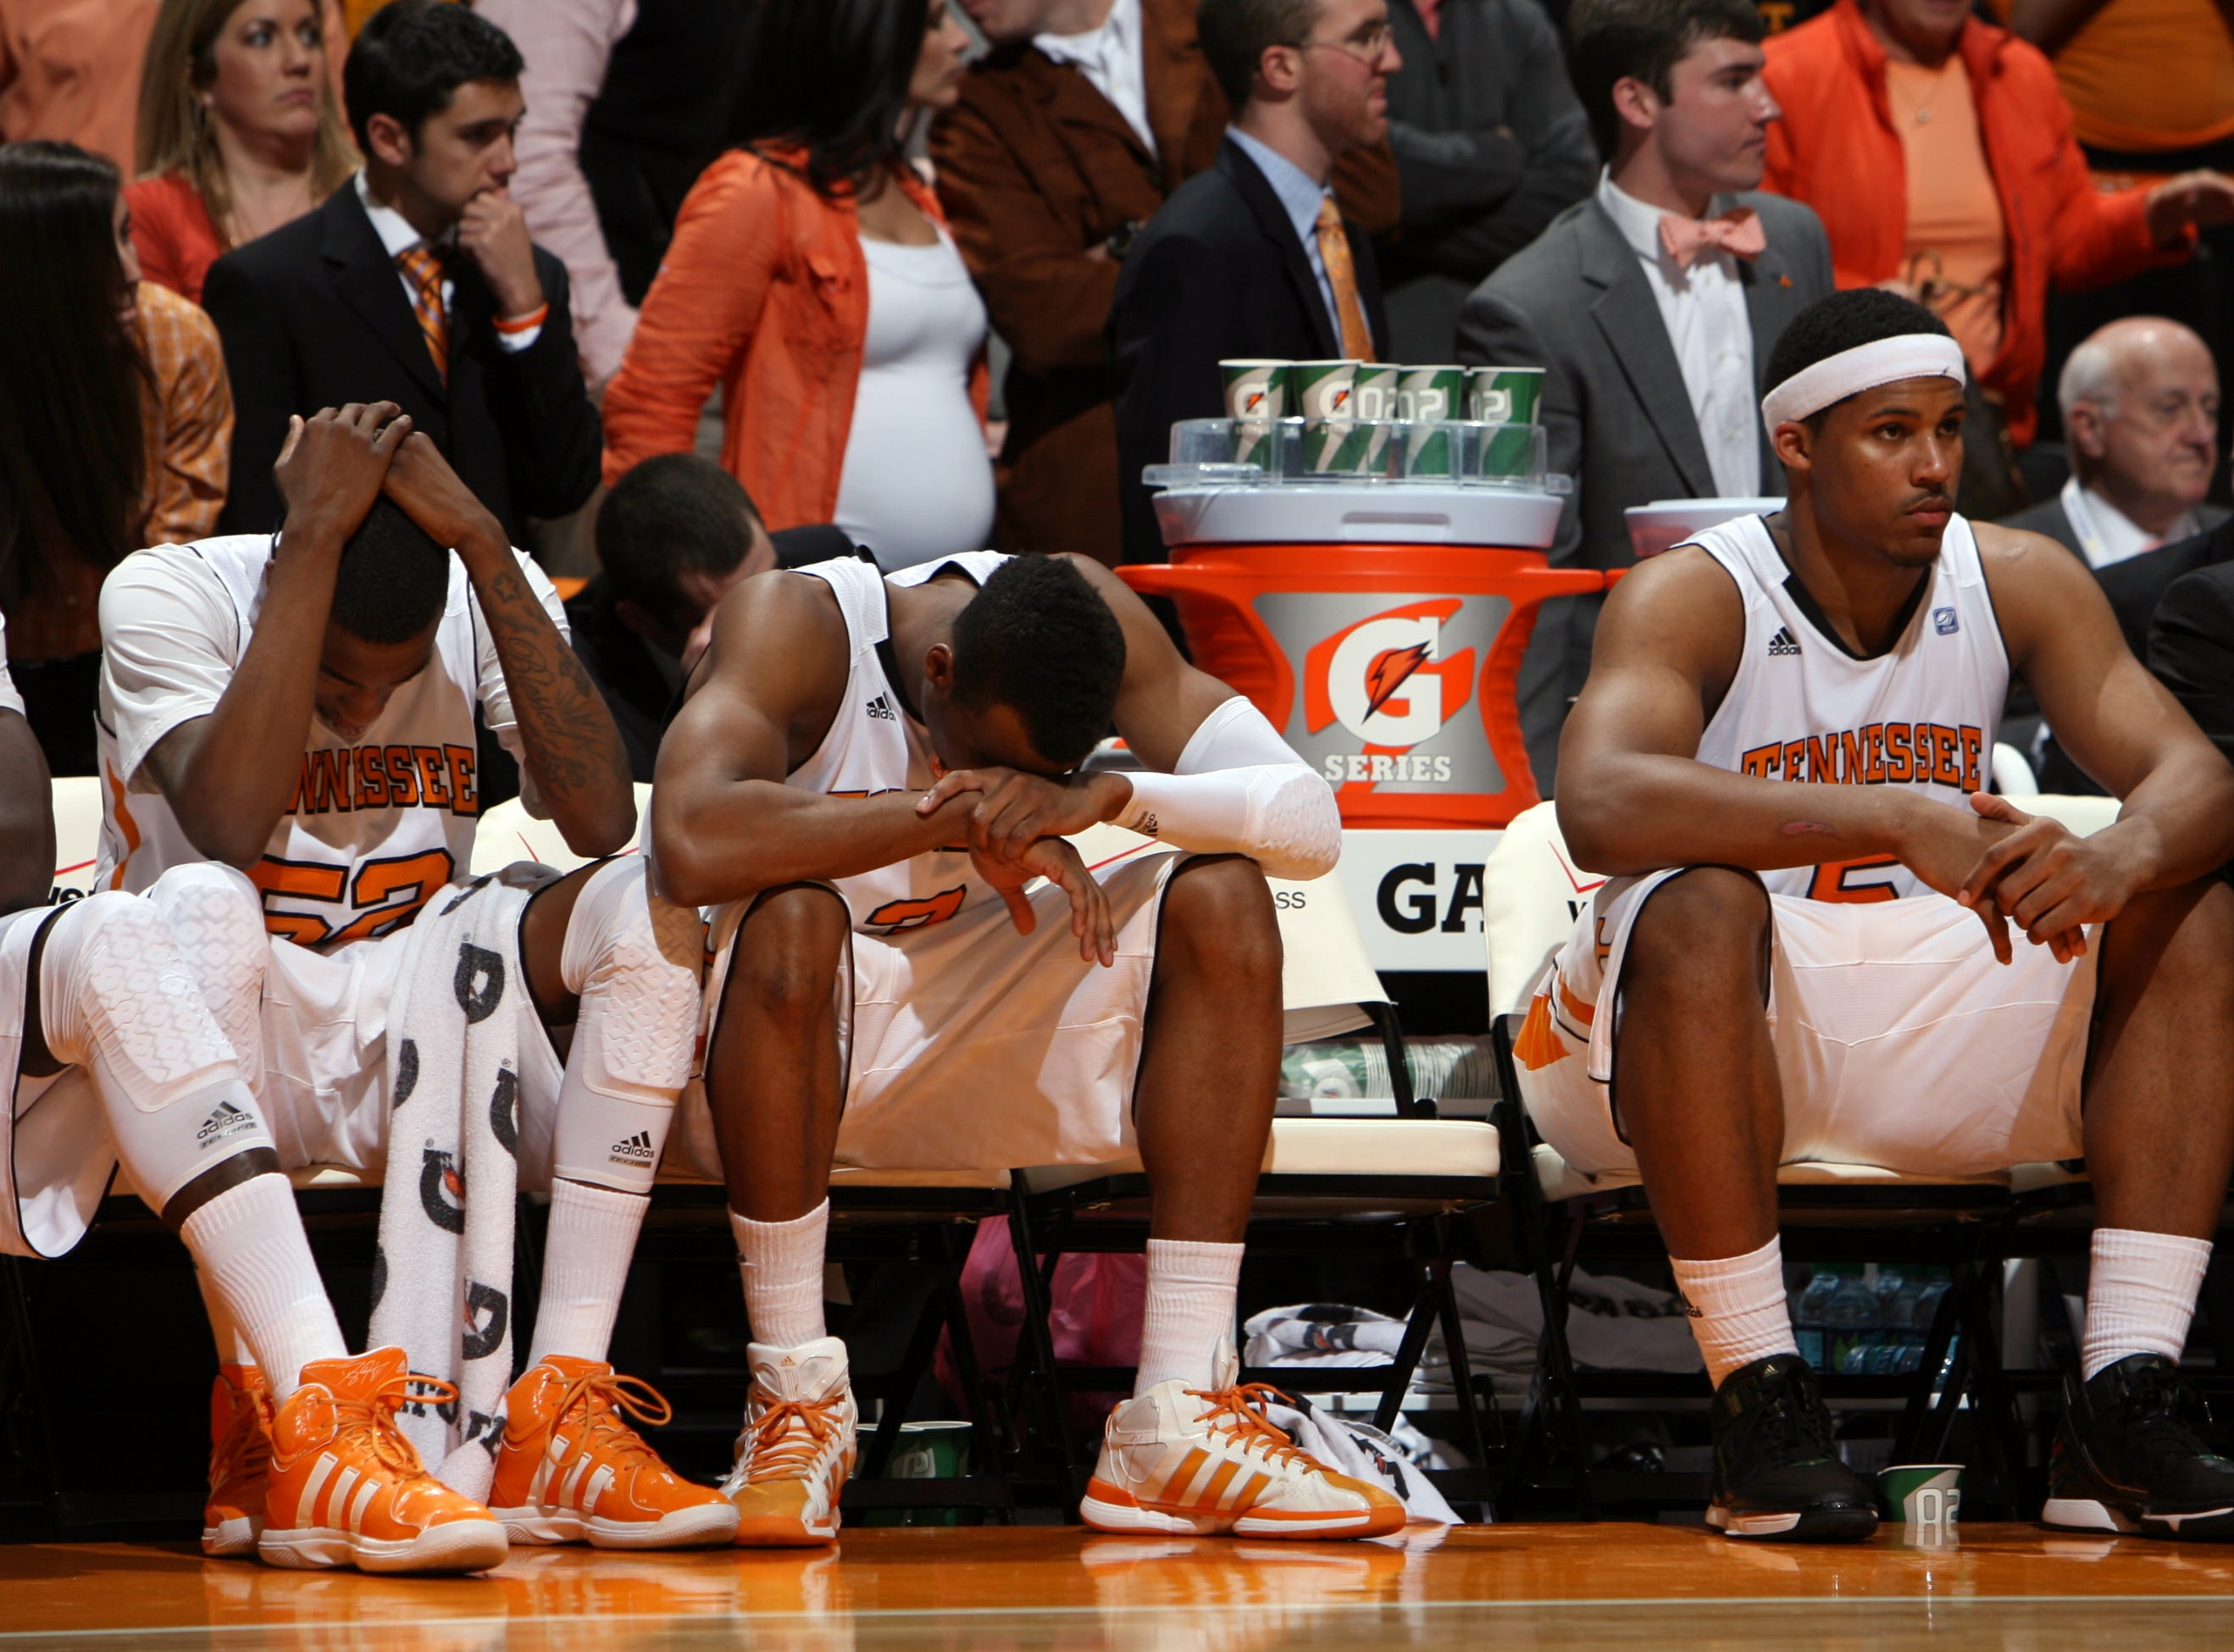 Tennessee forwards Jordan McRae (52), Renaldo Woolridge (3) and Jarnell Stokes (5), left to right, look on as Kentucky Wildcats close out their 65-62 win over the Vols at Thompson-Boling Arena in Saturday, Jan. 14, 2012.